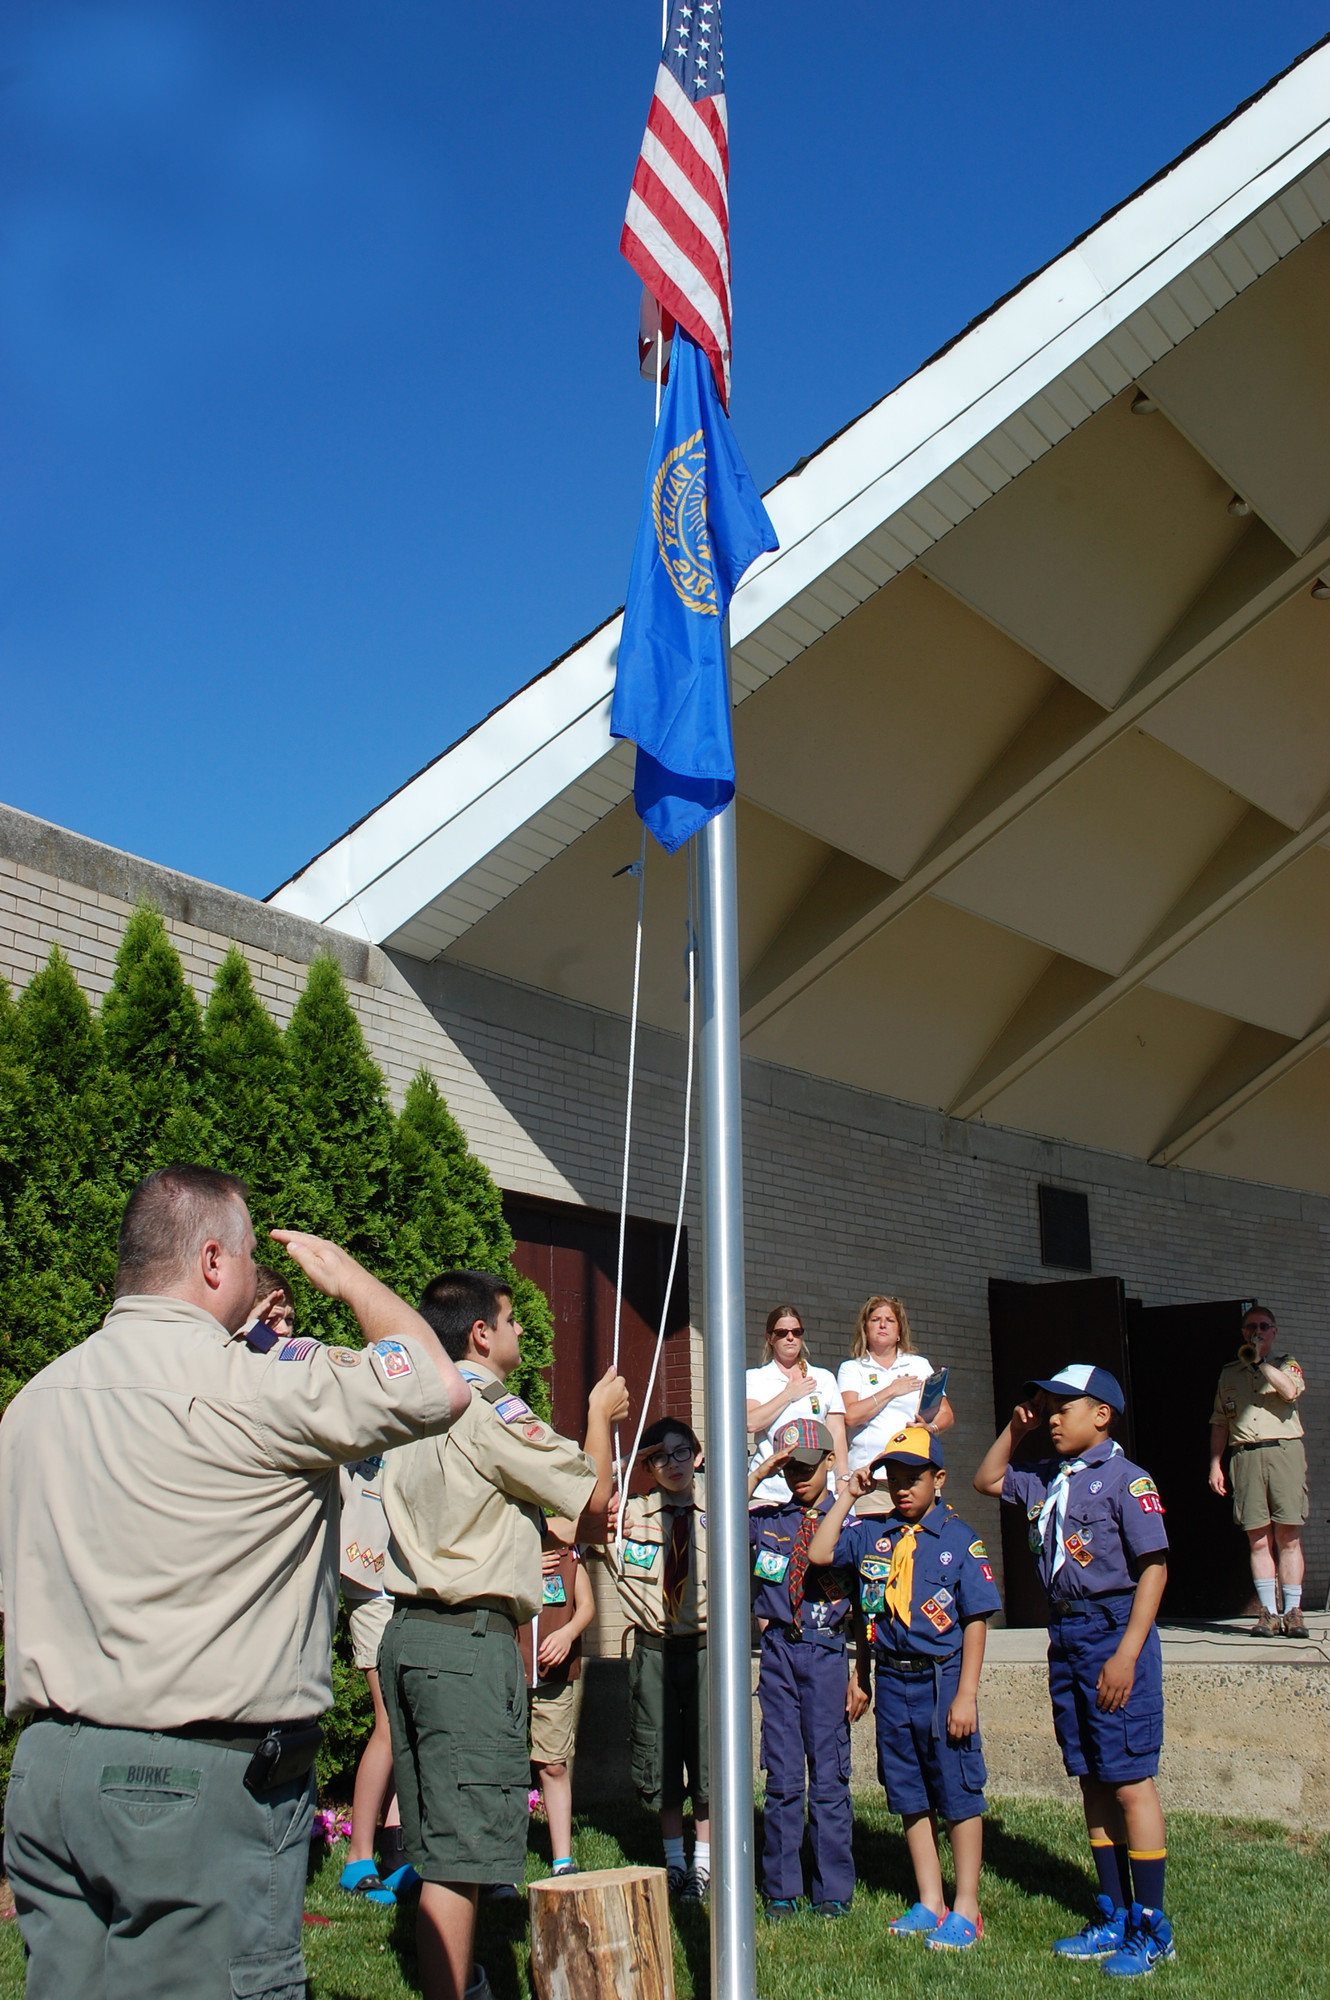 Scouts raised the flag last Saturday morning at the opening ceremony for the annual Camporee on the Village Green.